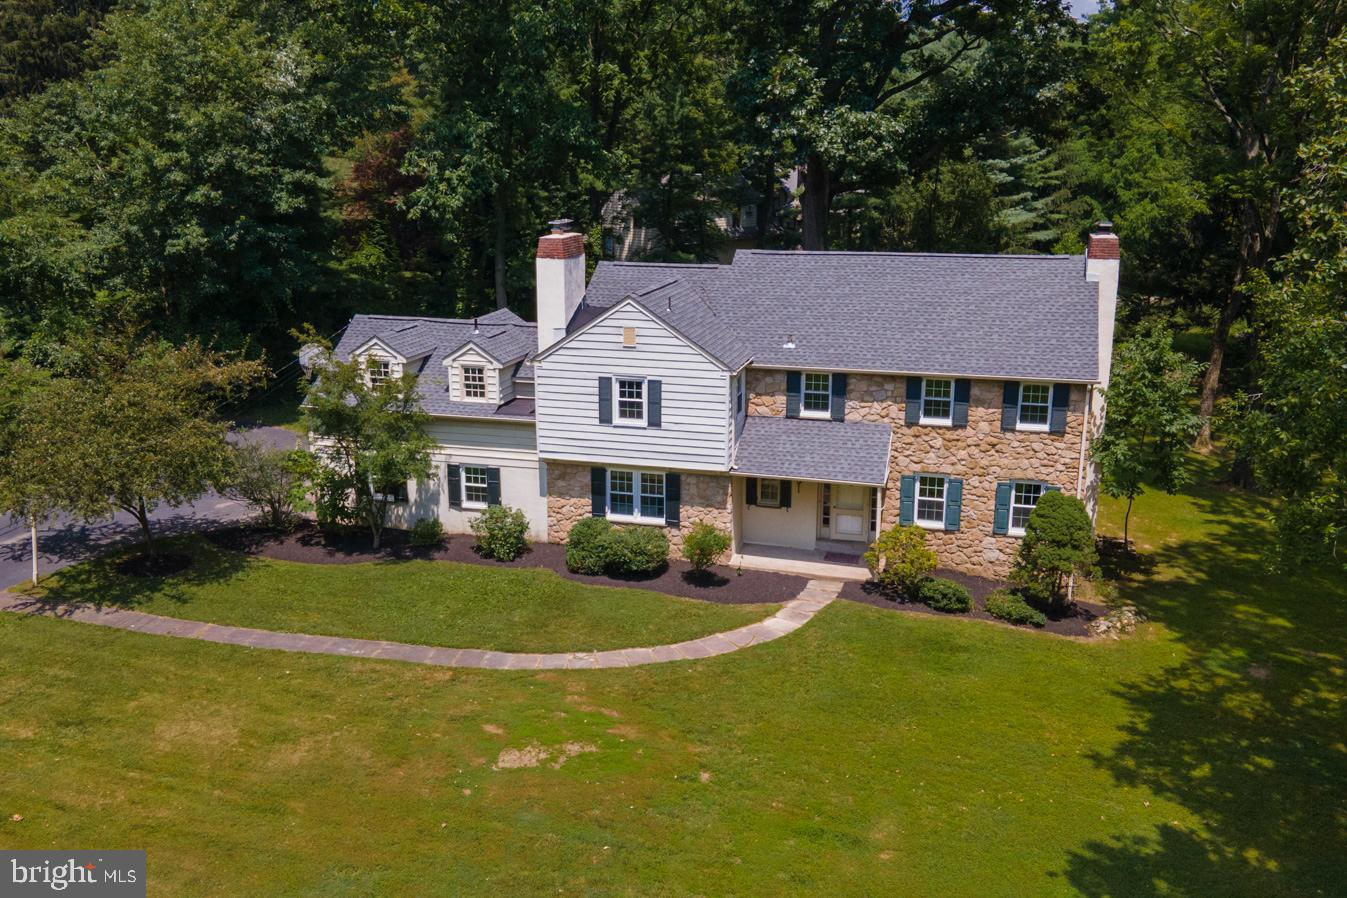 Elegant and classic stone colonial home in excellent Radnor school district.  Beautiful level lot, 4  bedrooms, 3 full bath, and 1 half bath, family room,  plus a large office that can be used as the 5th bedroom. Finished walk out basement with daylight,  two stair cases, two car garage, 3 fireplace. Large bright rooms, walk-up attic with the potential of huge extra useful space. Tons of recent upgrades, including but not limited to  high quality brand new roof 2021, new windows 2021, new  water heater 2021,  new washer 2021, new dryer 2021, new dishwasher 2021, fresh painted whole house 2021, and new basement flooring 2021.